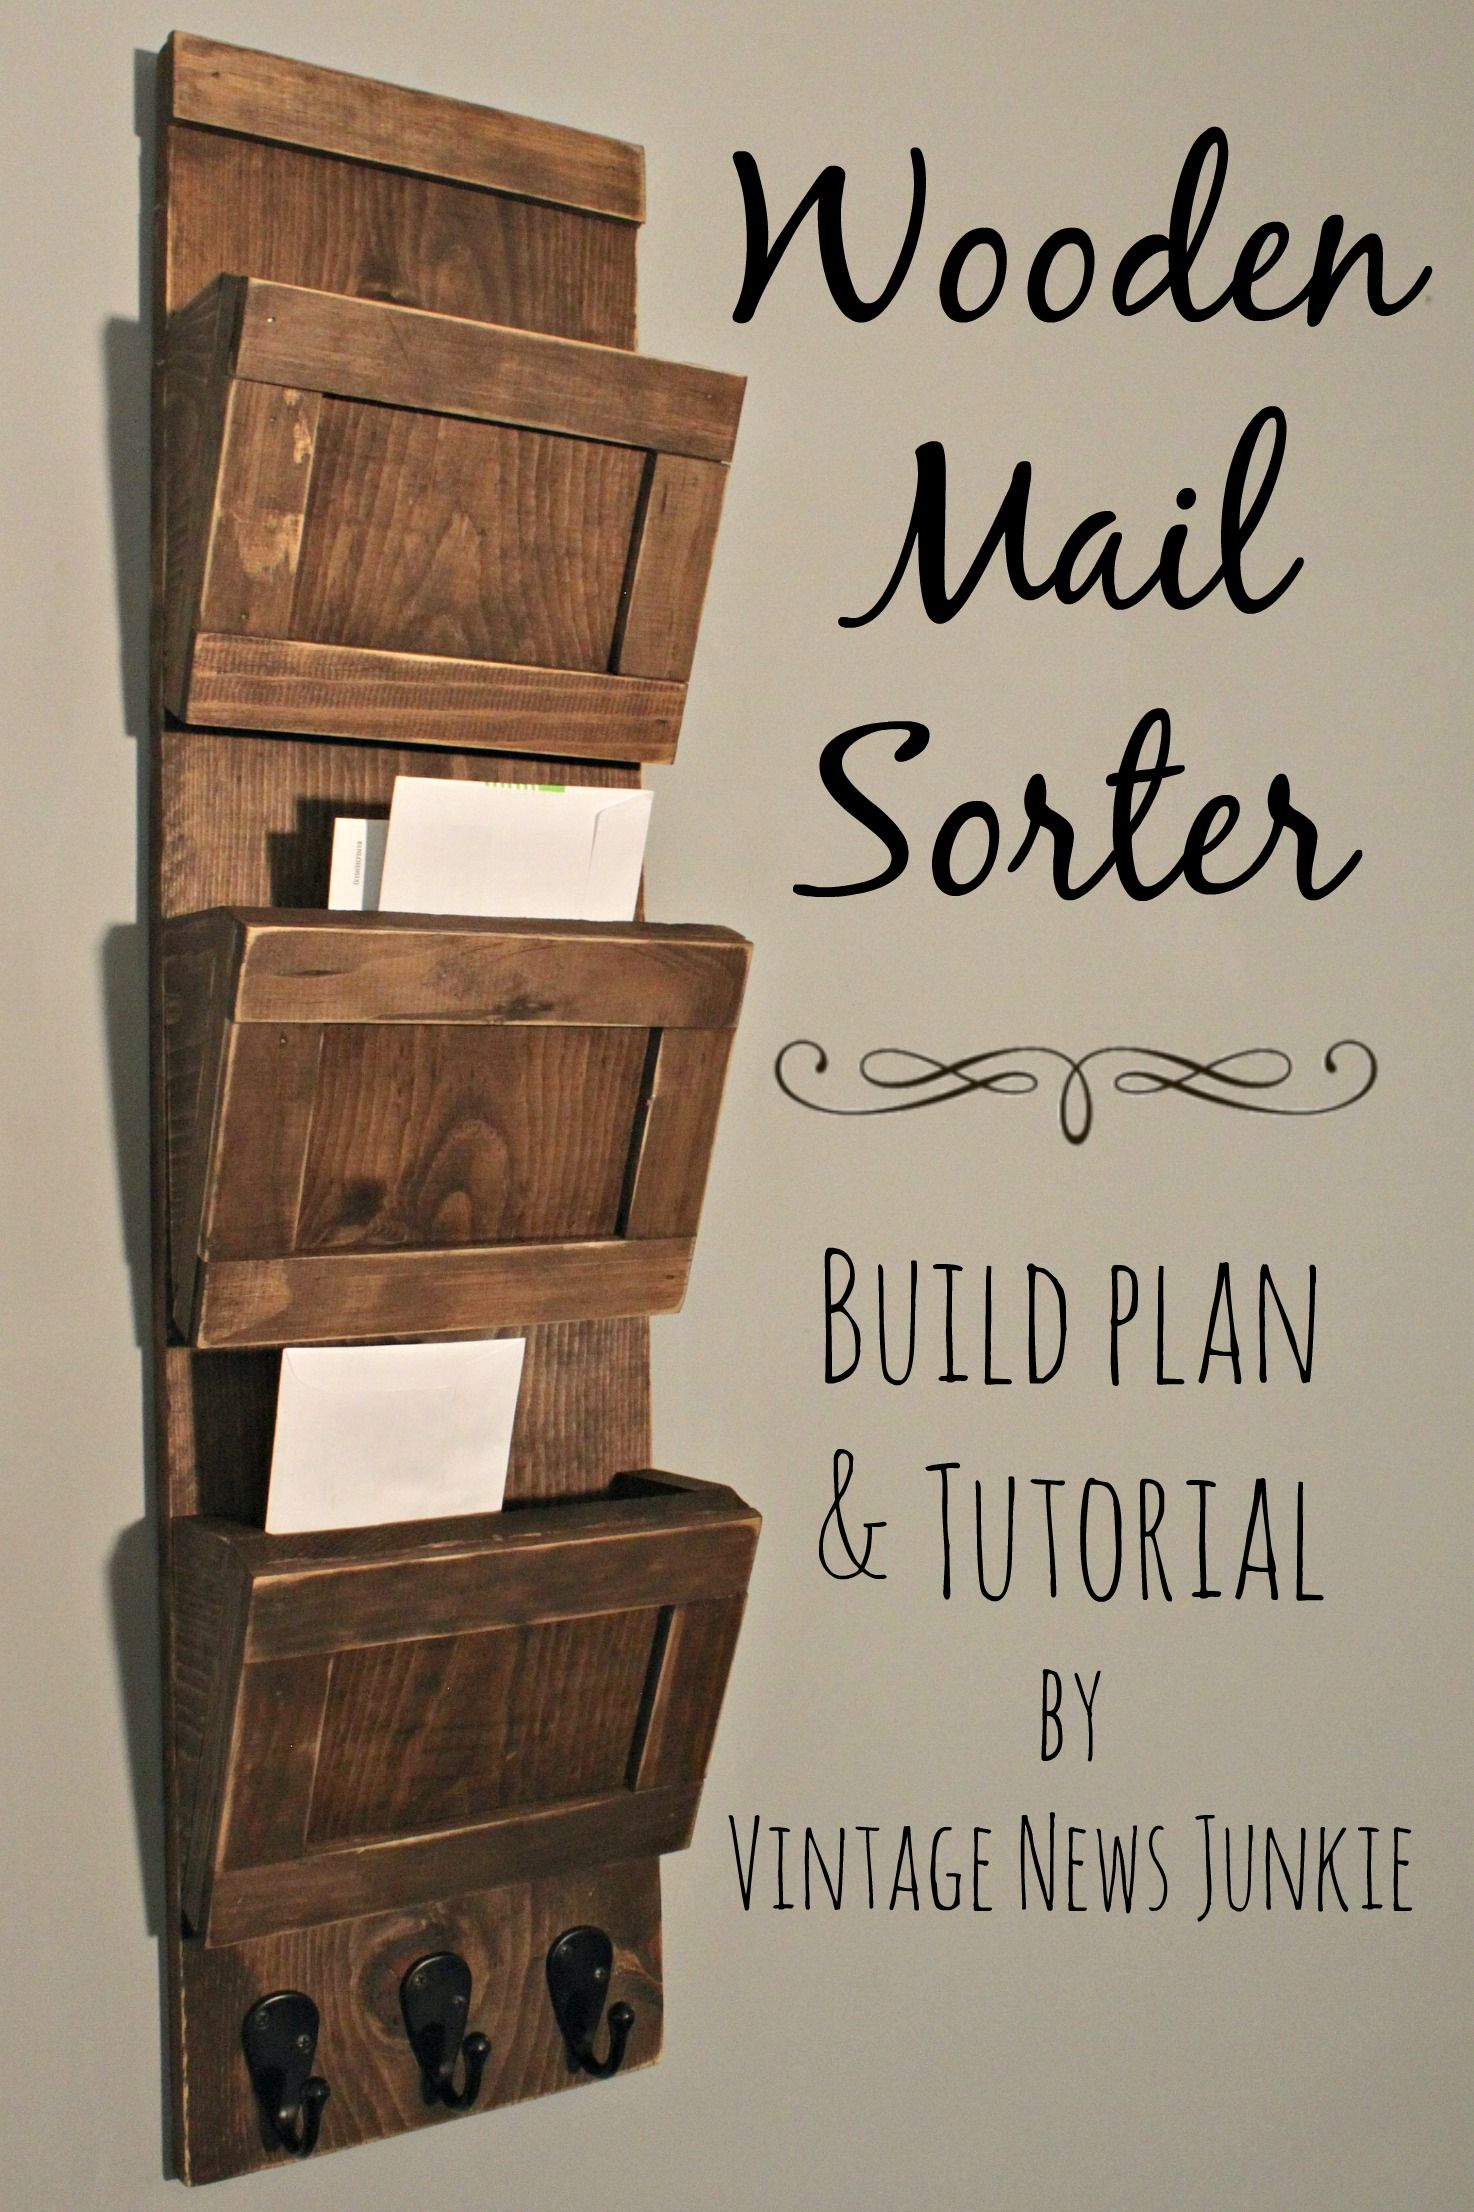 Get Organized Diy Wood Mail Sorter Plans And Tutorial Rustic House Wood Diy Home Diy